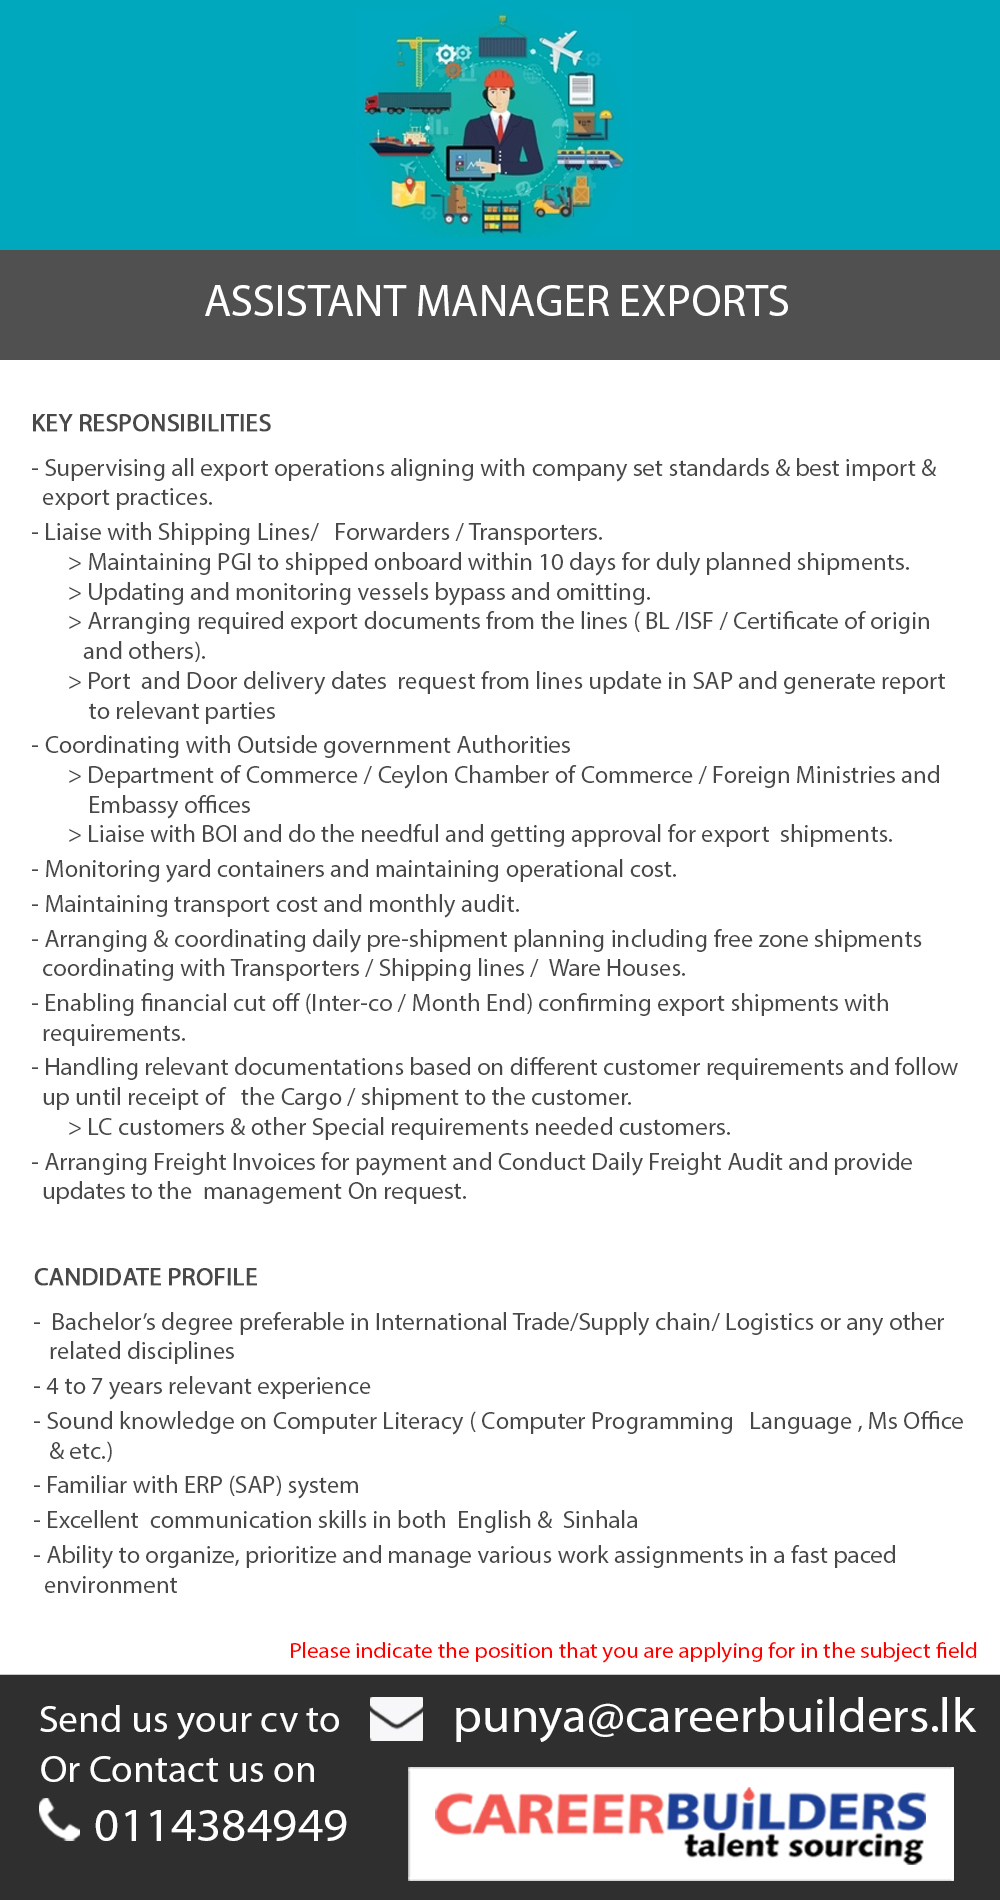 Assistant Manager Exports job vacancy at Career Builders